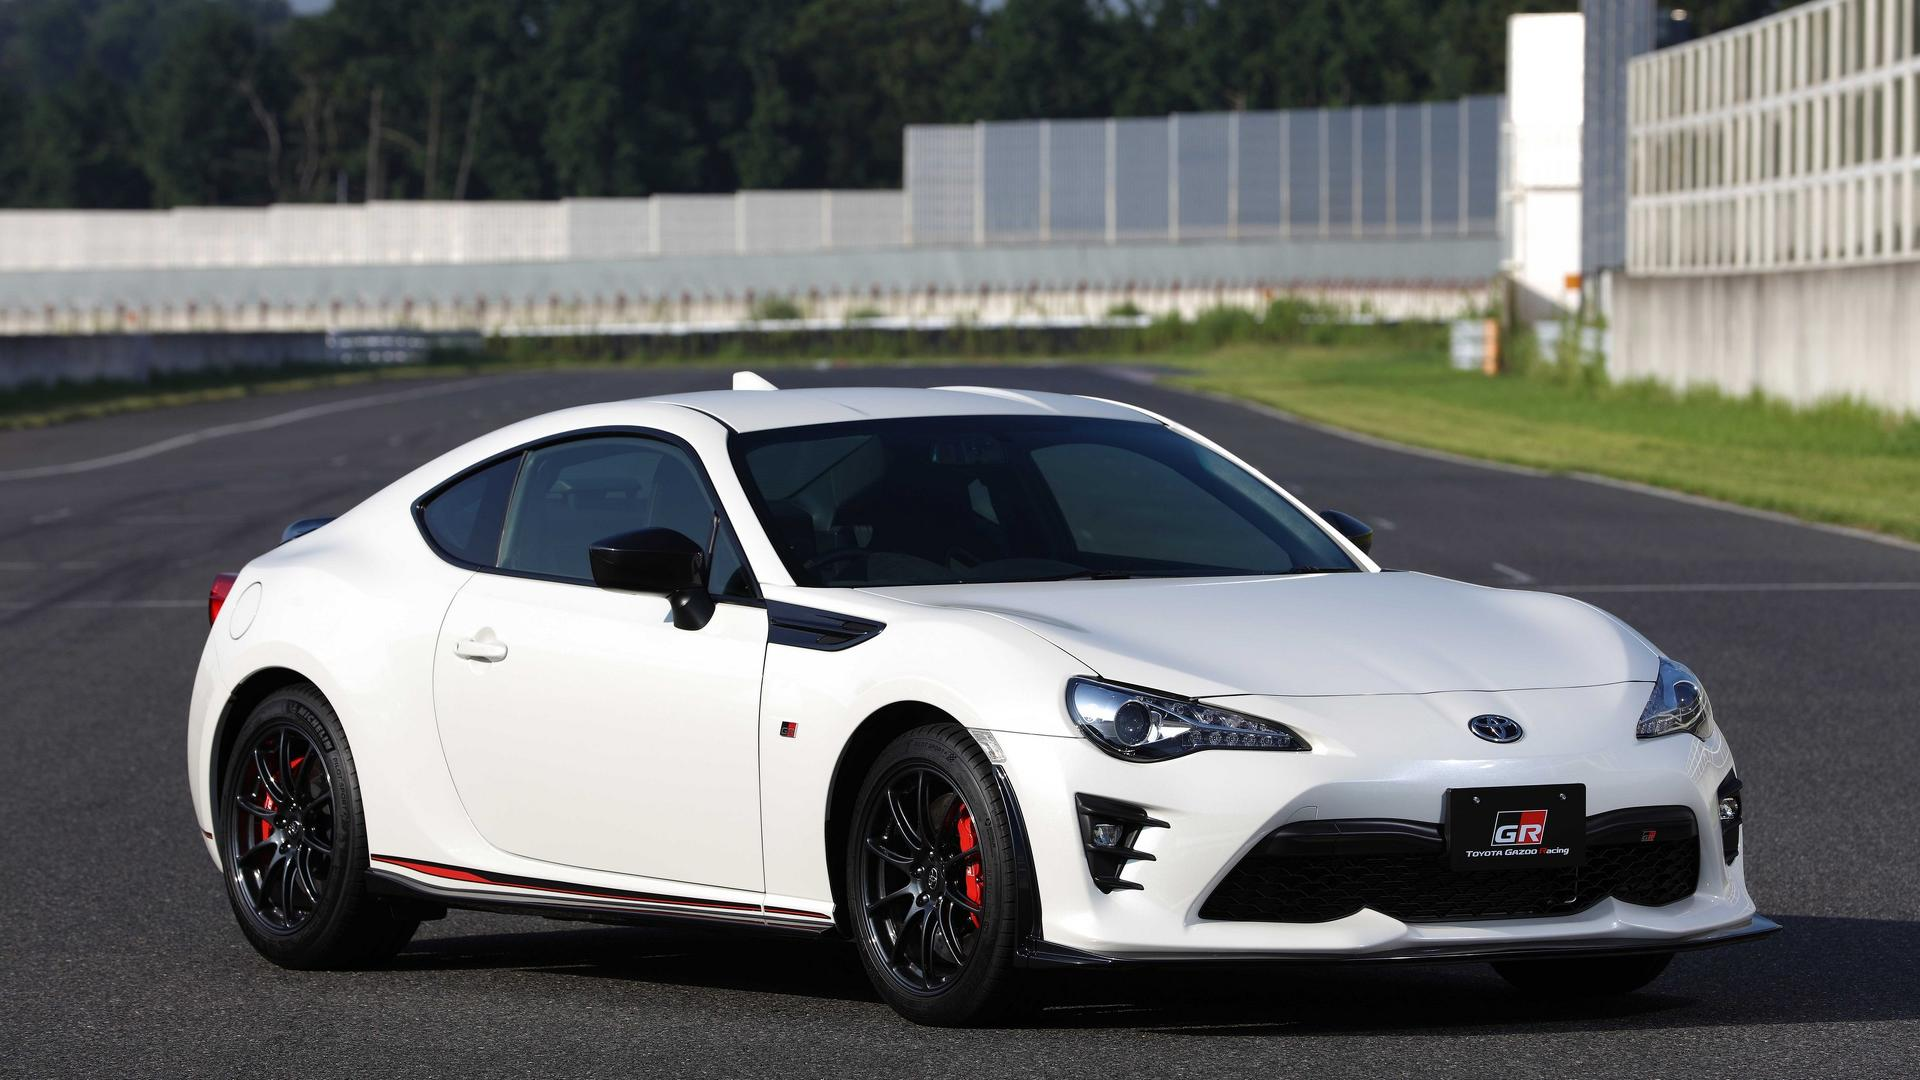 toyota gr likely to be branded trd in us launch standalone sports car. Black Bedroom Furniture Sets. Home Design Ideas